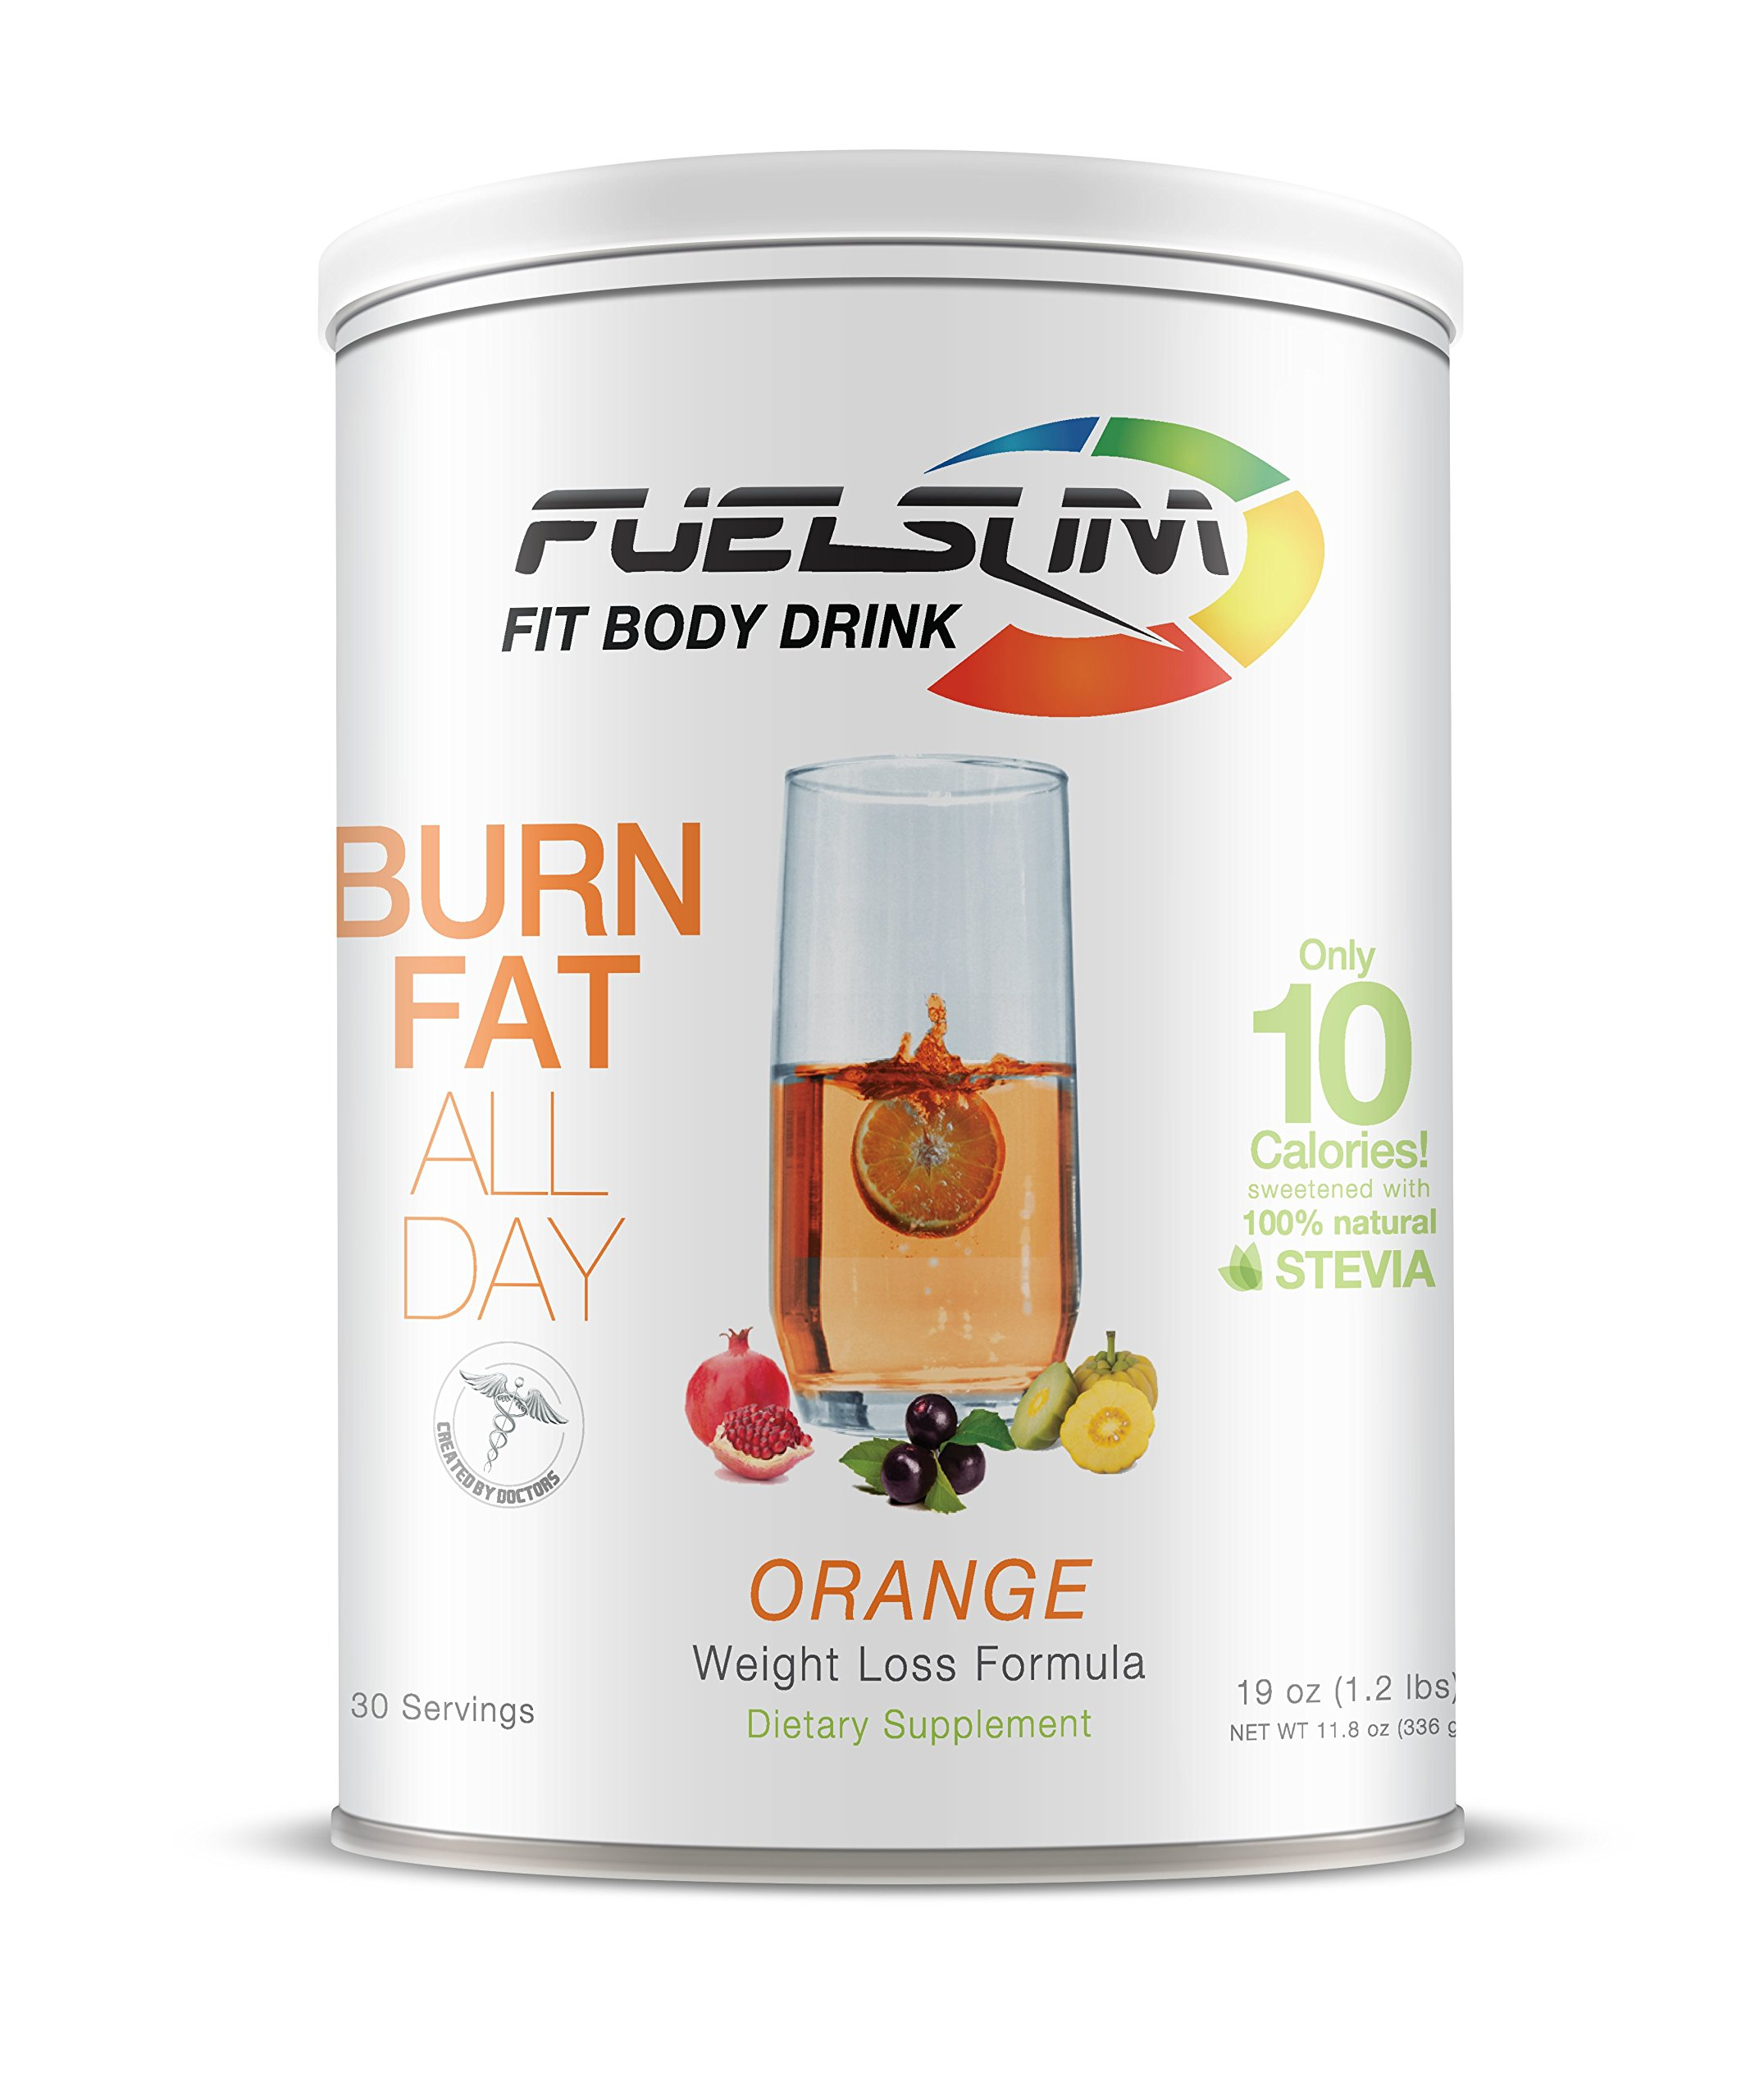 Fuelslim #1 Weight Loss Supplement Over 10,000 Sold!!! Amazing Results Lose Weight Fast Burn Fat Appetite Suppressant Sugar Free Kosher Gluten Free Reduce Hunger (orange)